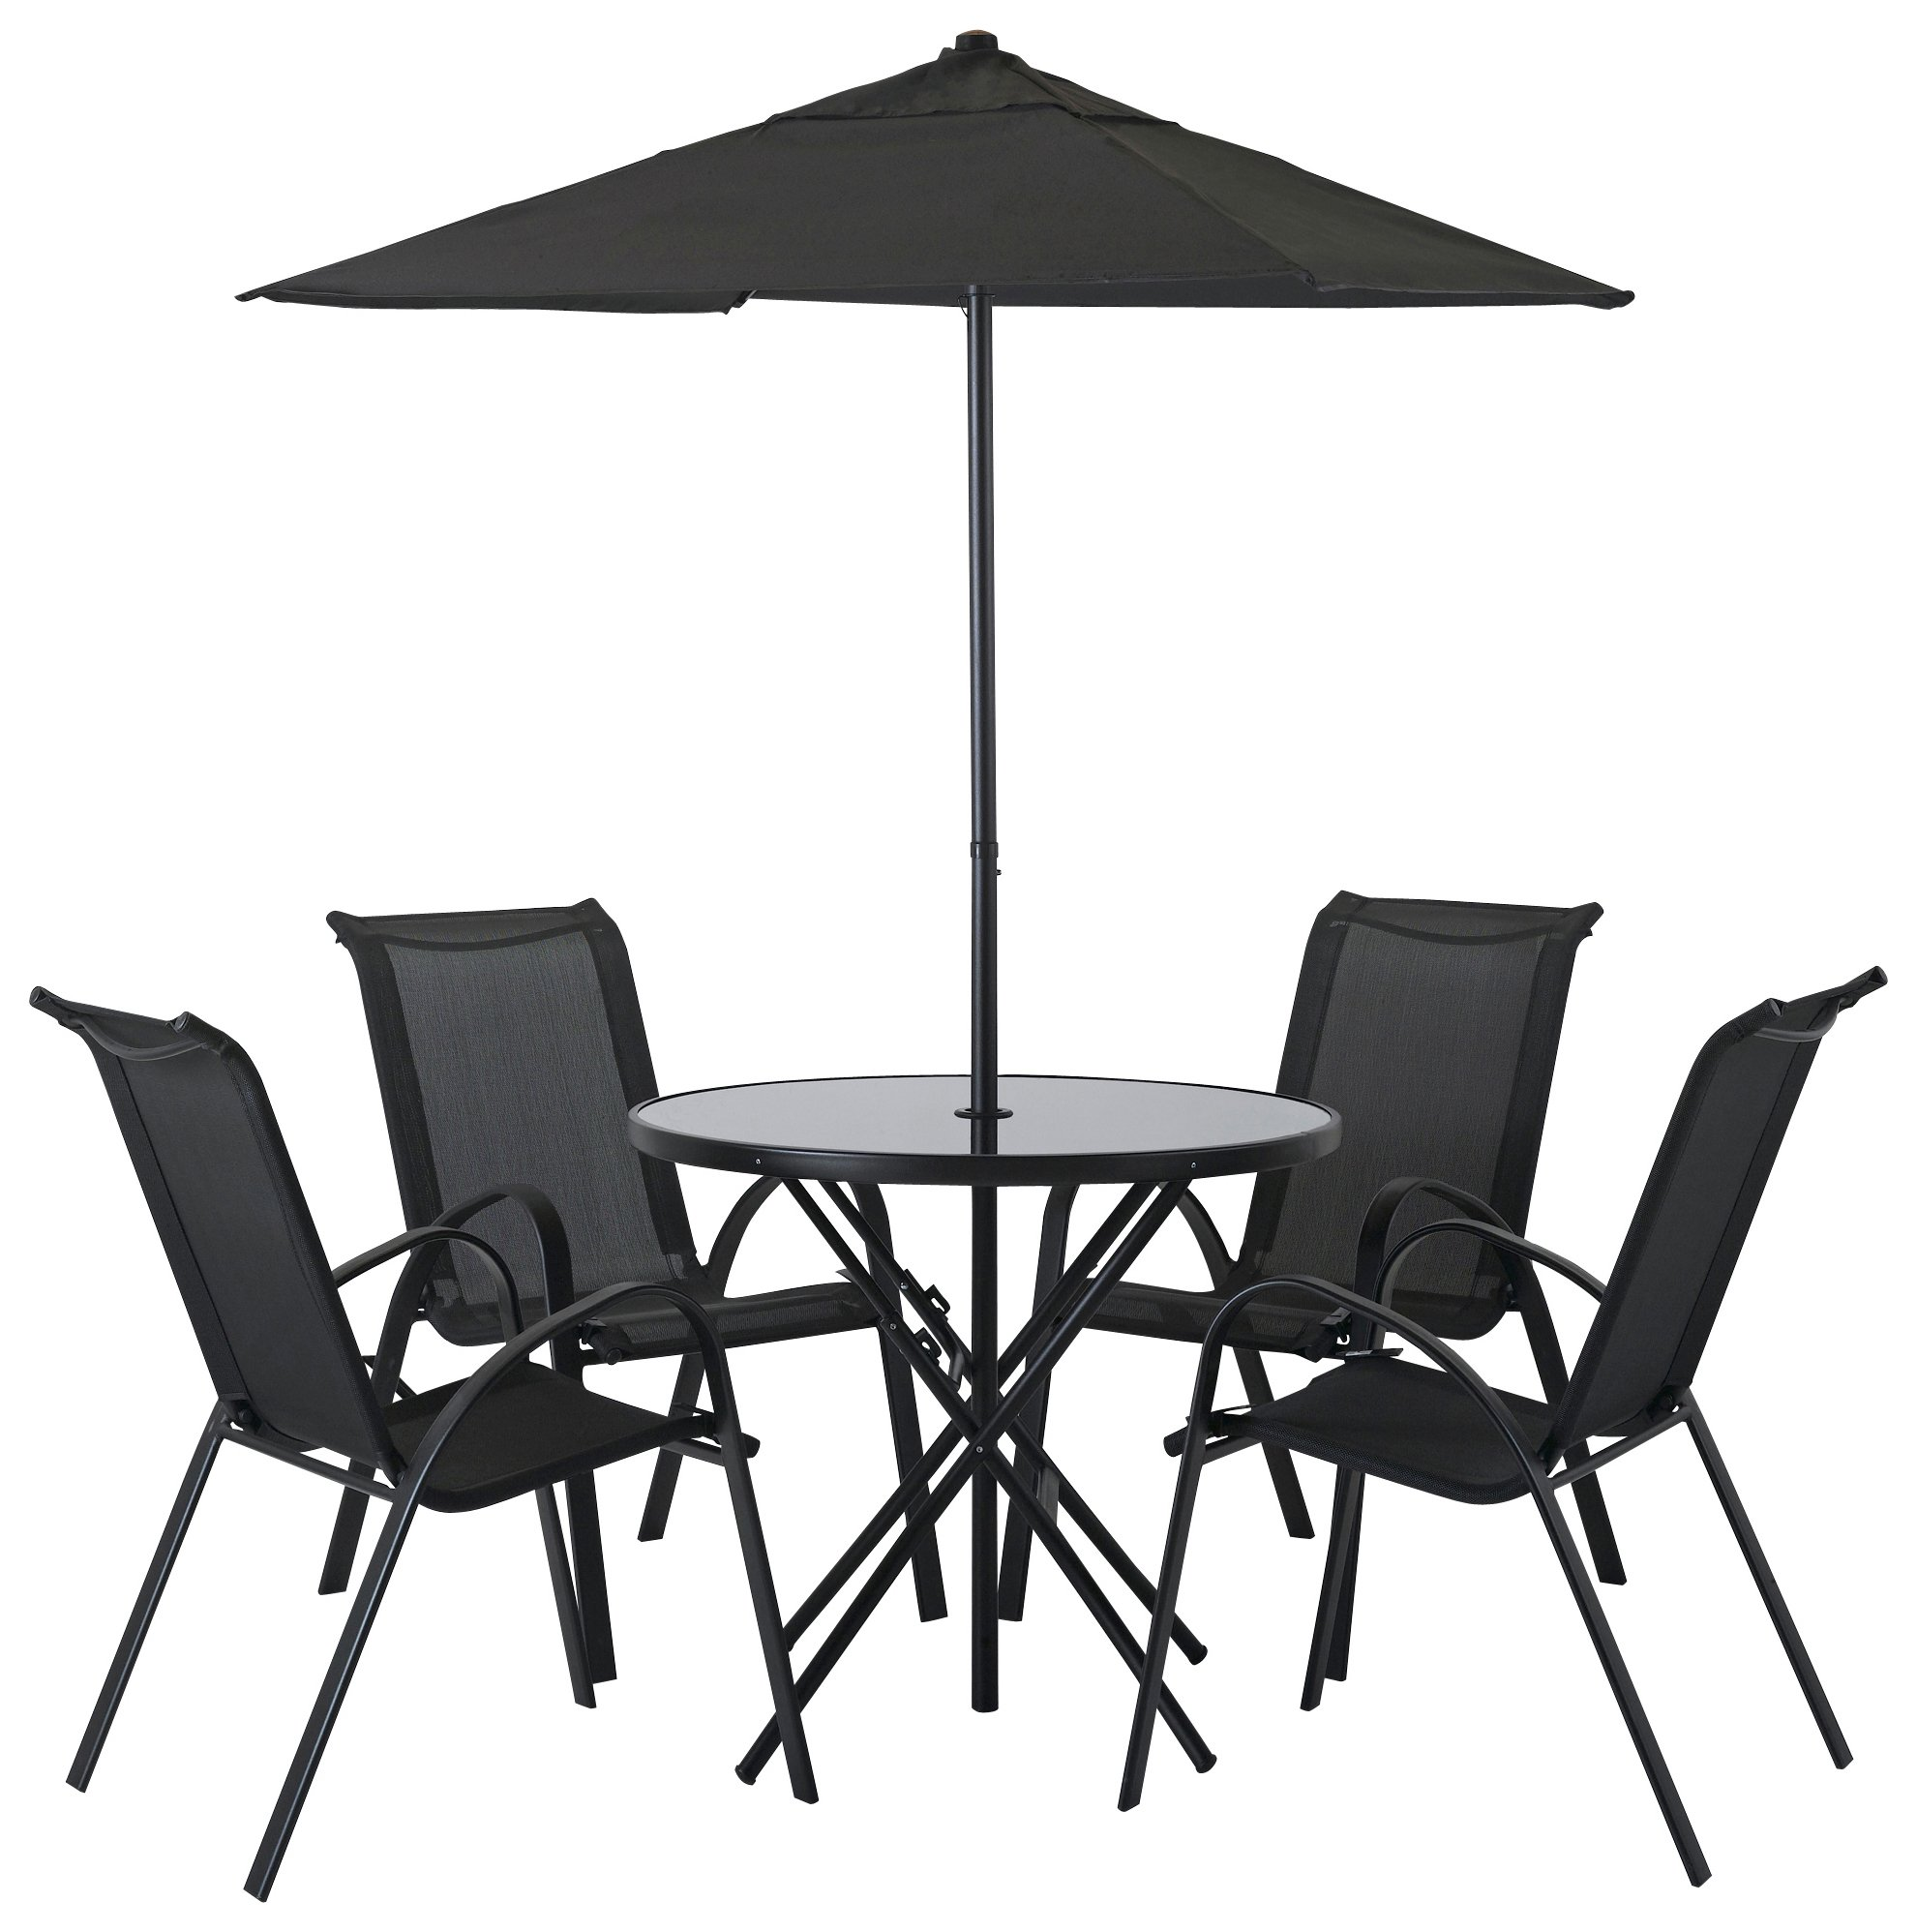 Lovely HOME Sicily 4 Seater Patio Furniture Set